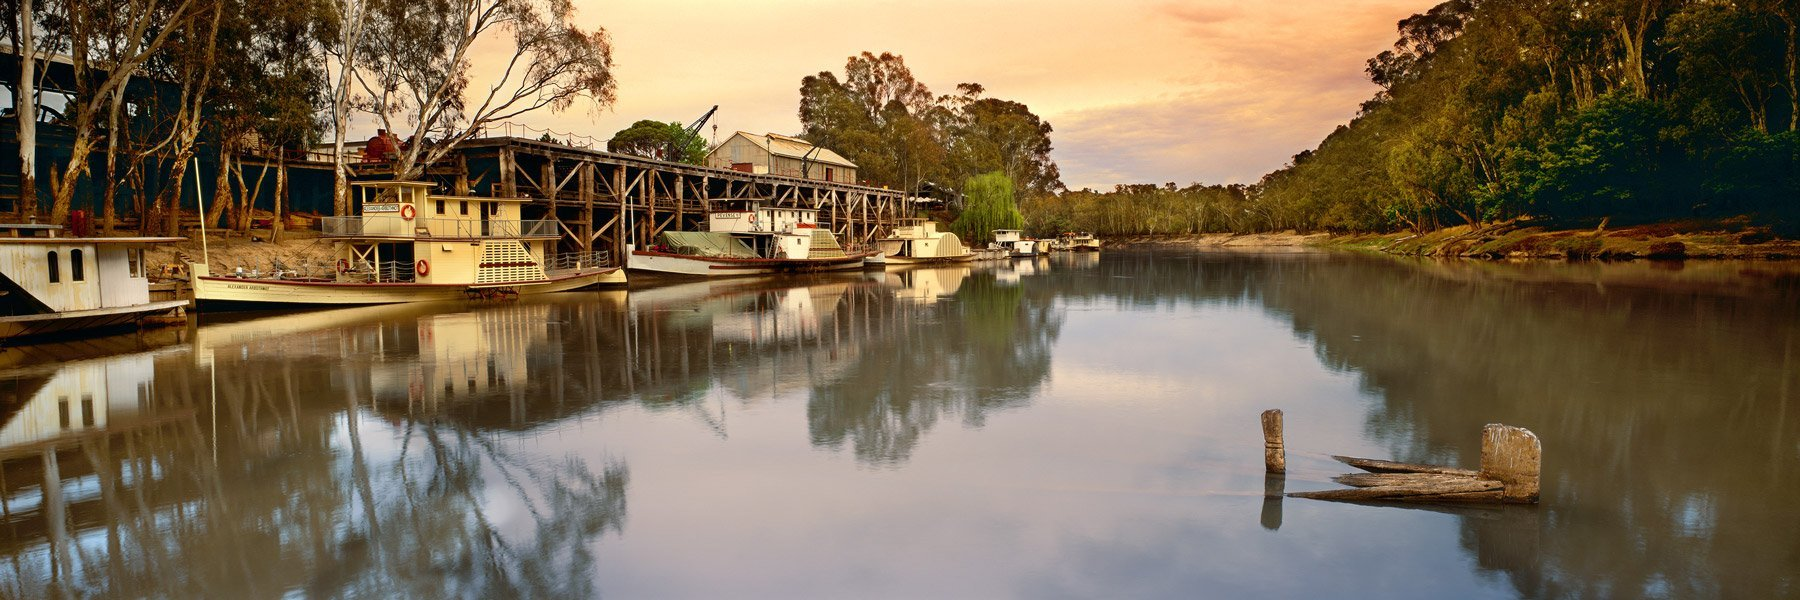 Paddle Steamers, Echuca Wharf